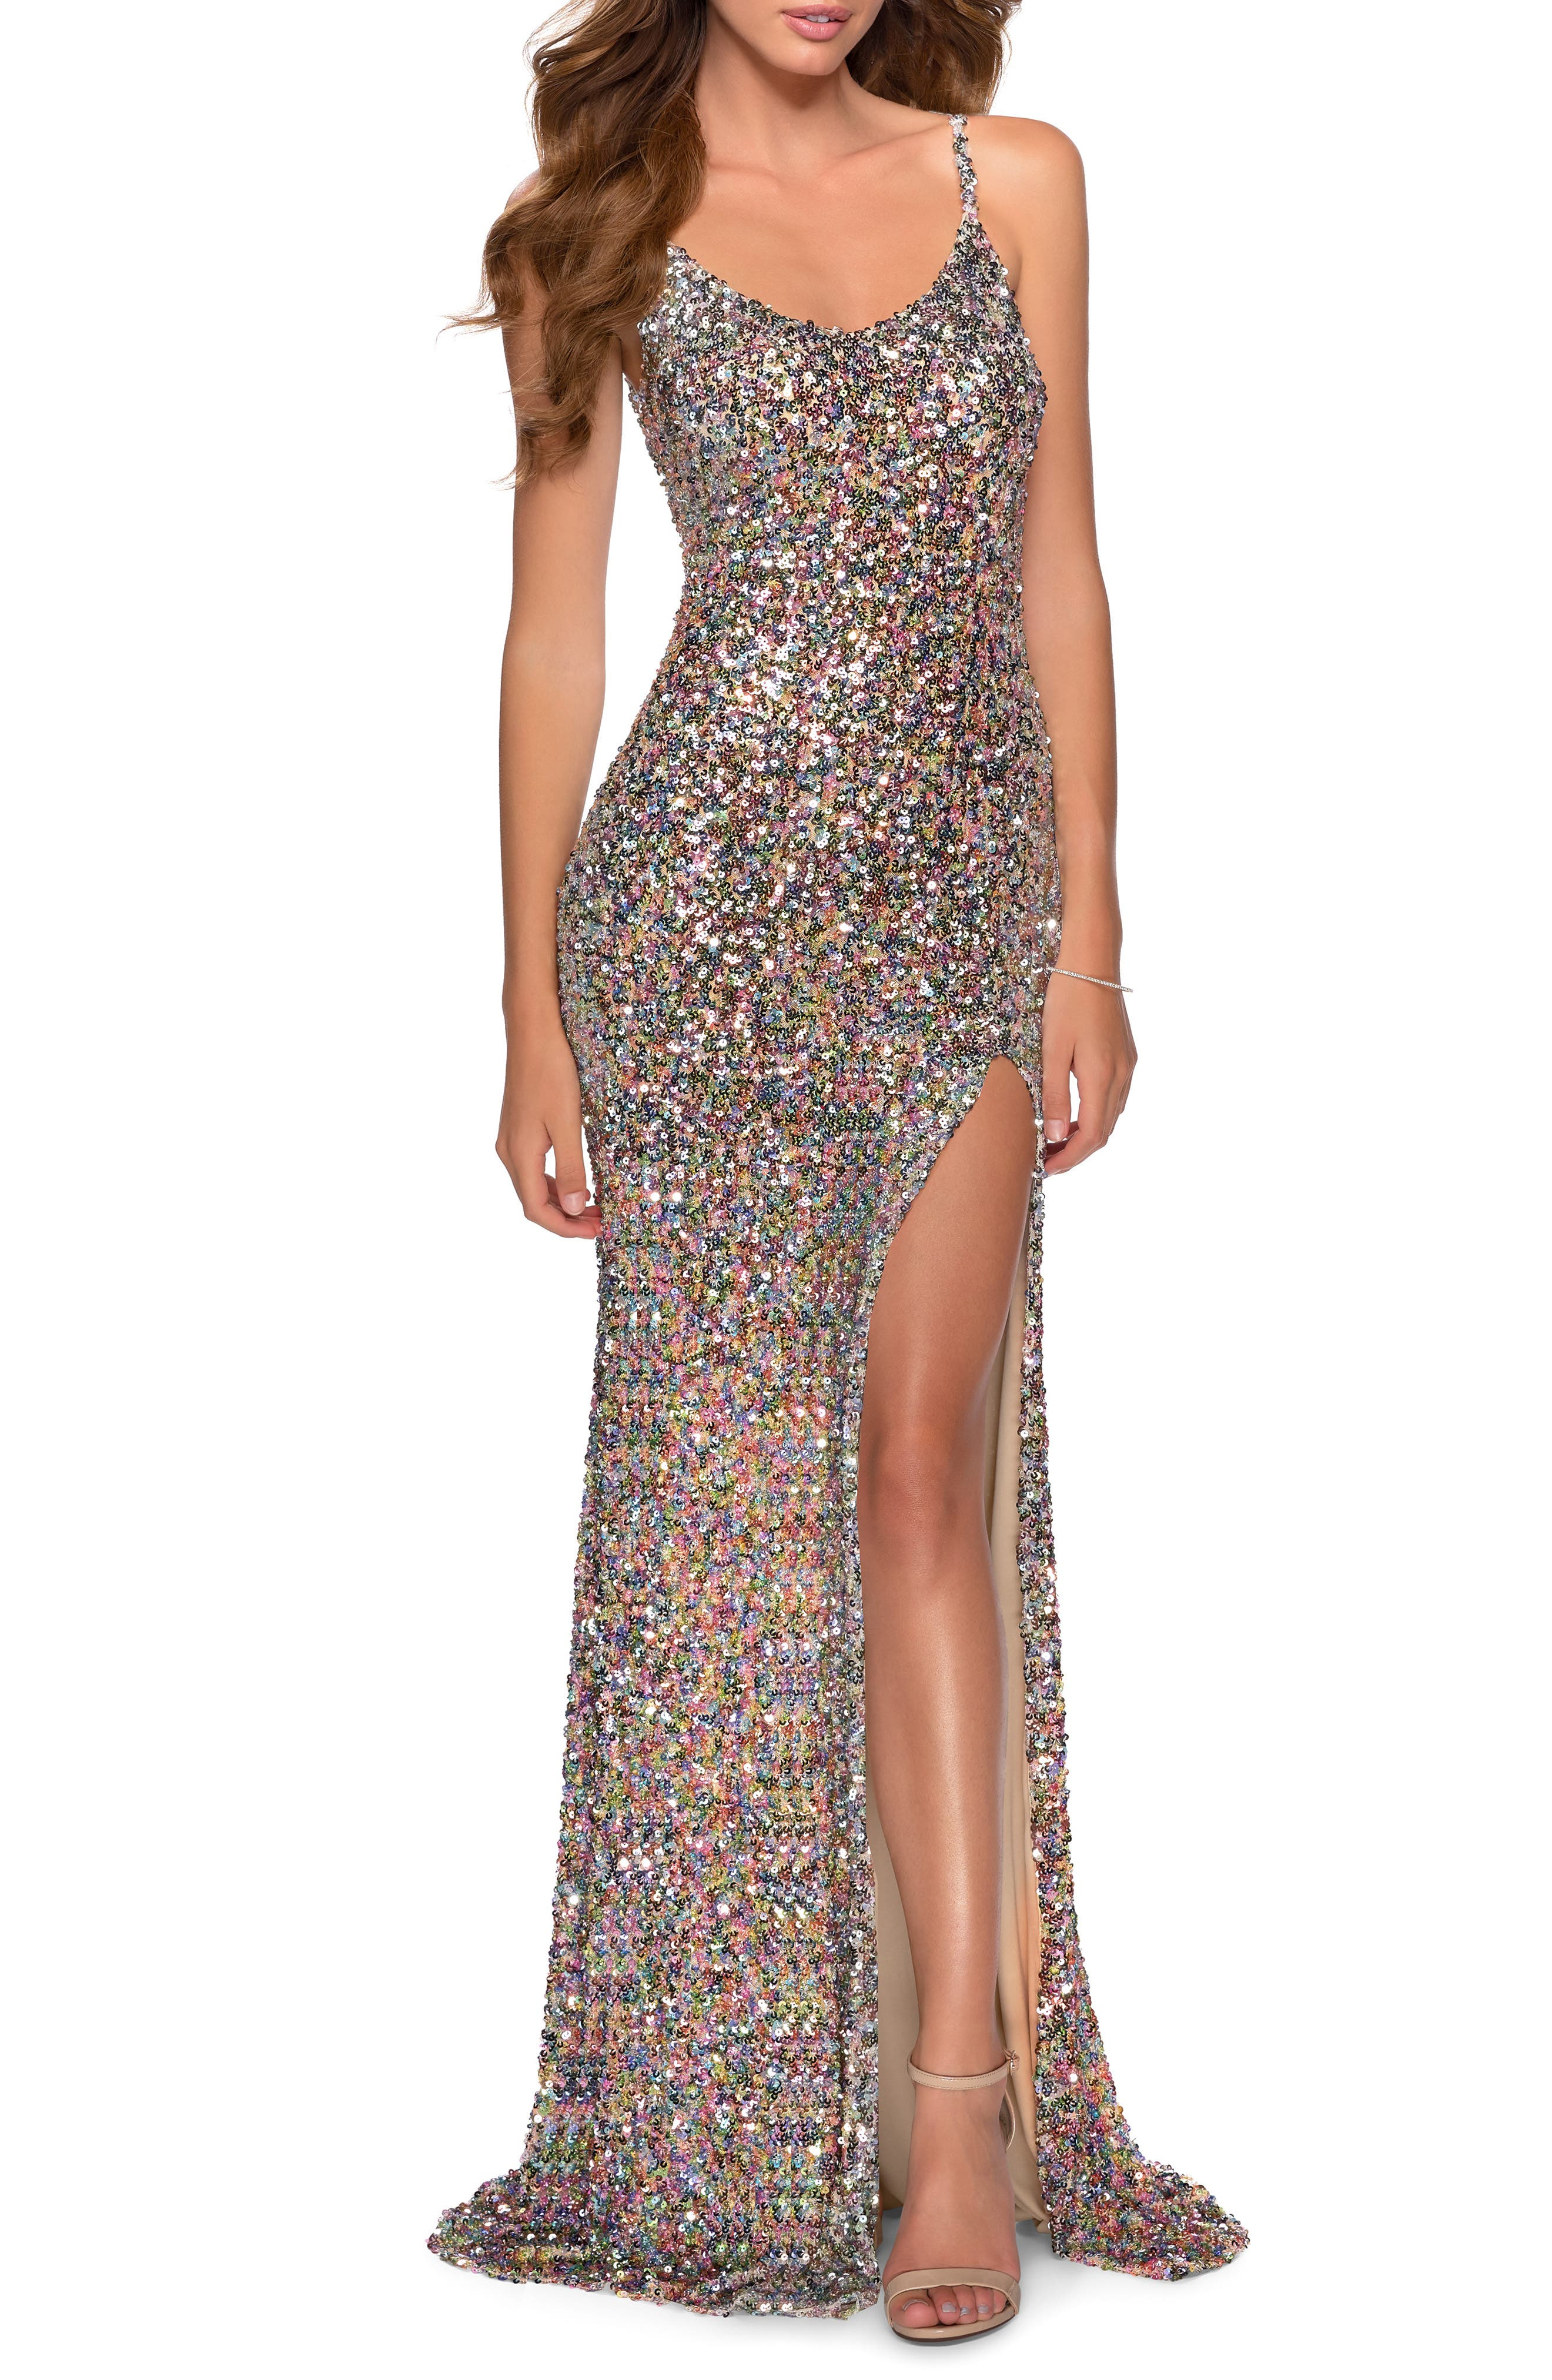 Light up every room in a rainbow of shimmer wearing this multicolored-sequin gown shaped a scooped neck, an alluring slit and a floor-sweeping skirt. Style Name: La Femme Multicolor Sequin Gown. Style Number: 5961583. Available in stores.